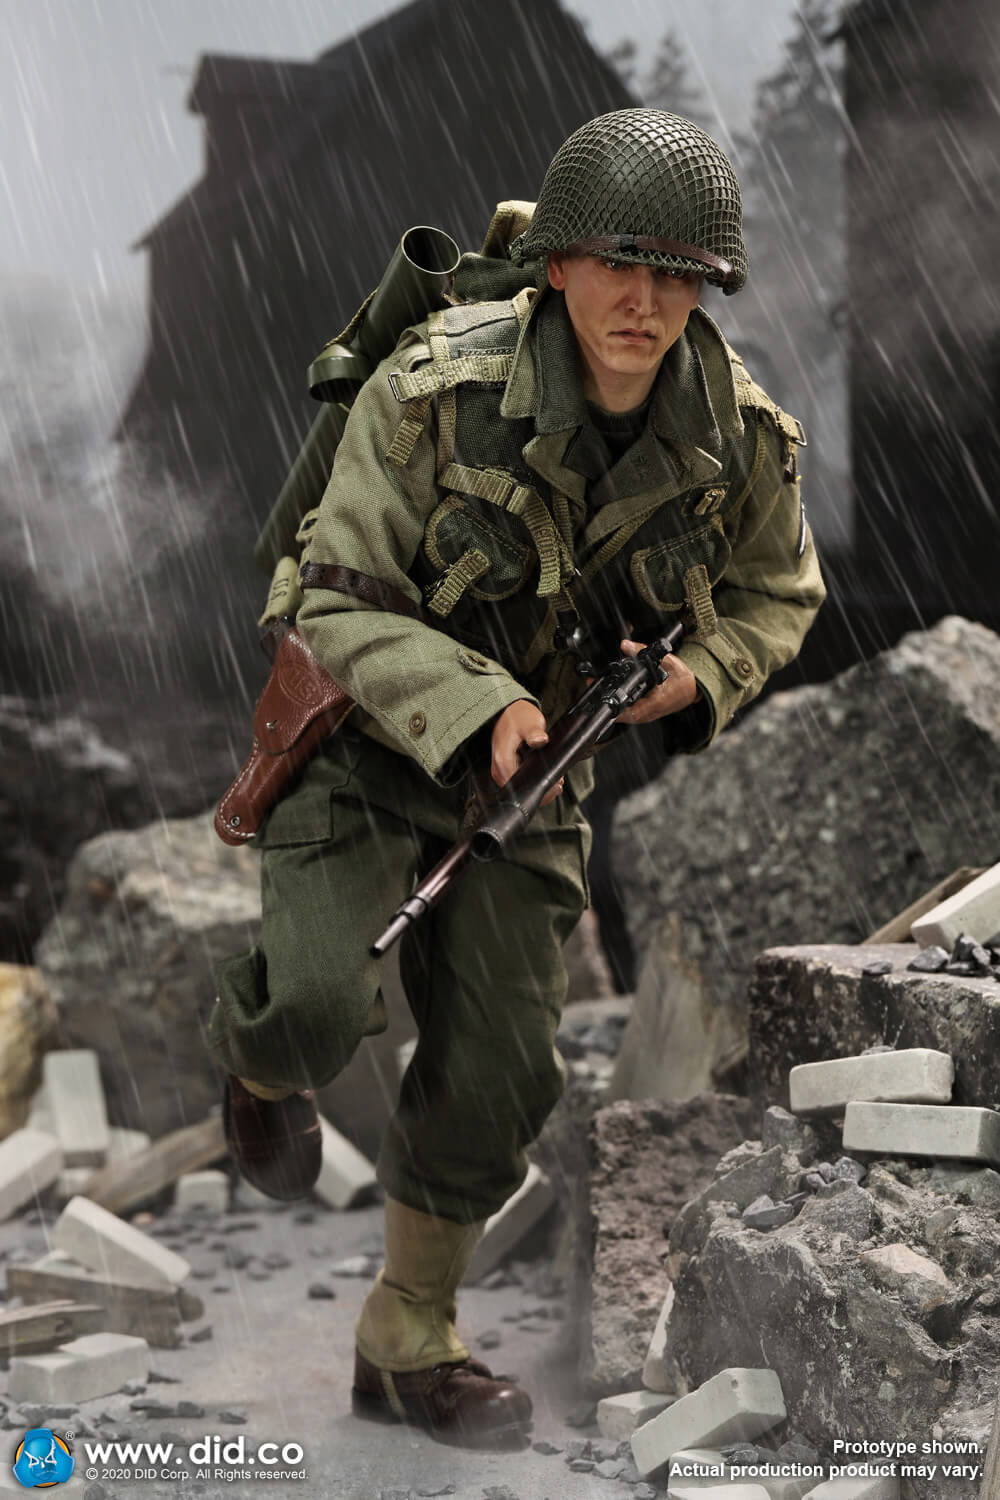 DiD - NEW PRODUCT: DiD: A80144 WWII US 2nd Ranger Battalion Series 4 Private Jackson 2686